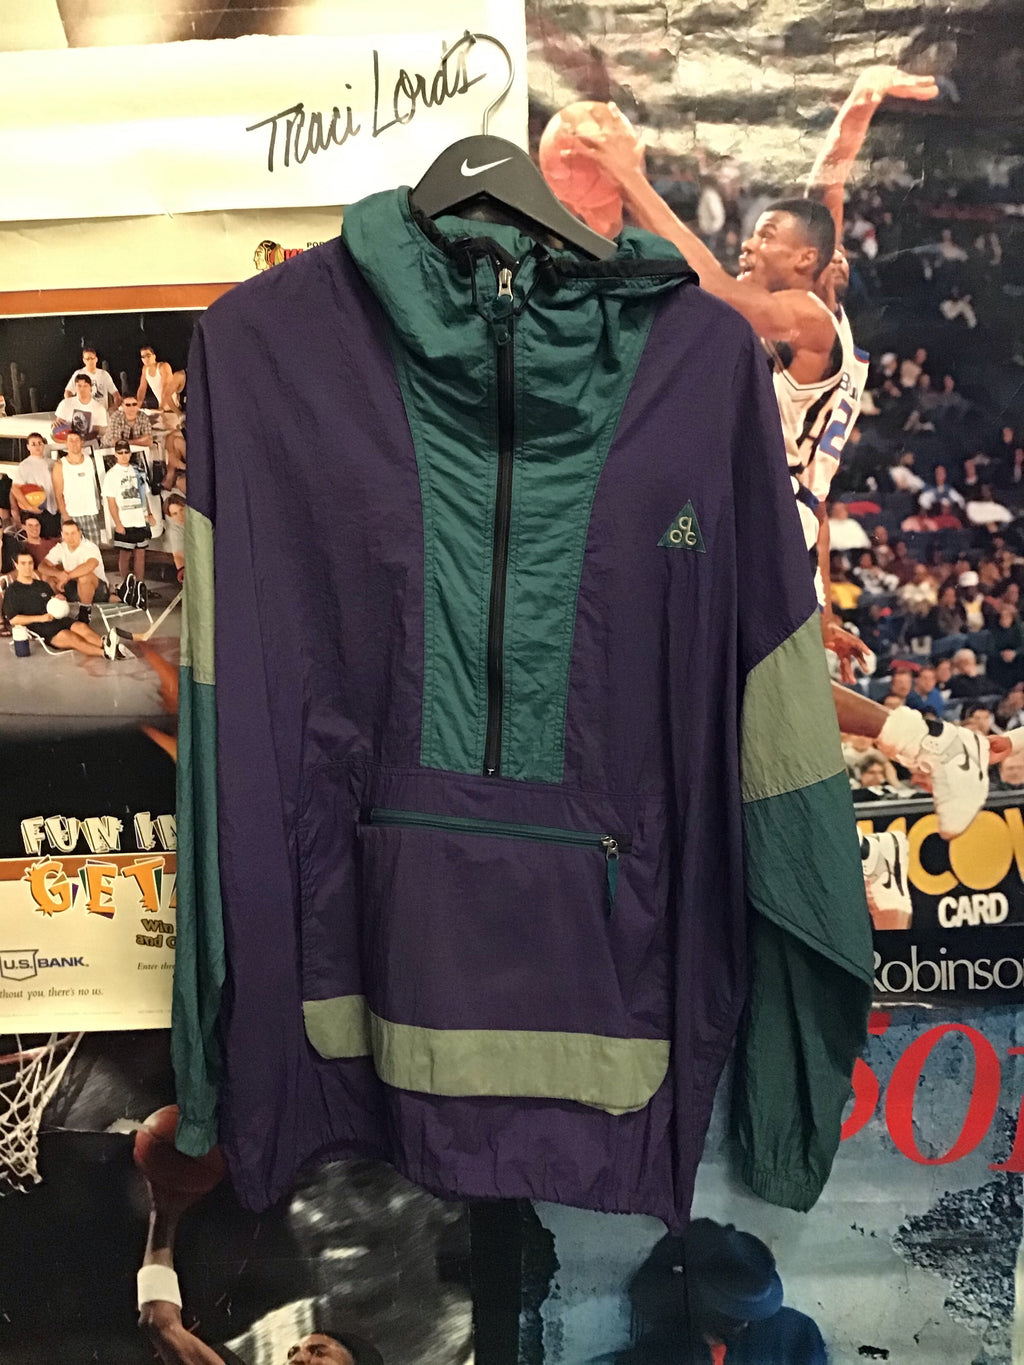 Nike ACG Half Zip Jacket XL - Decades of dope